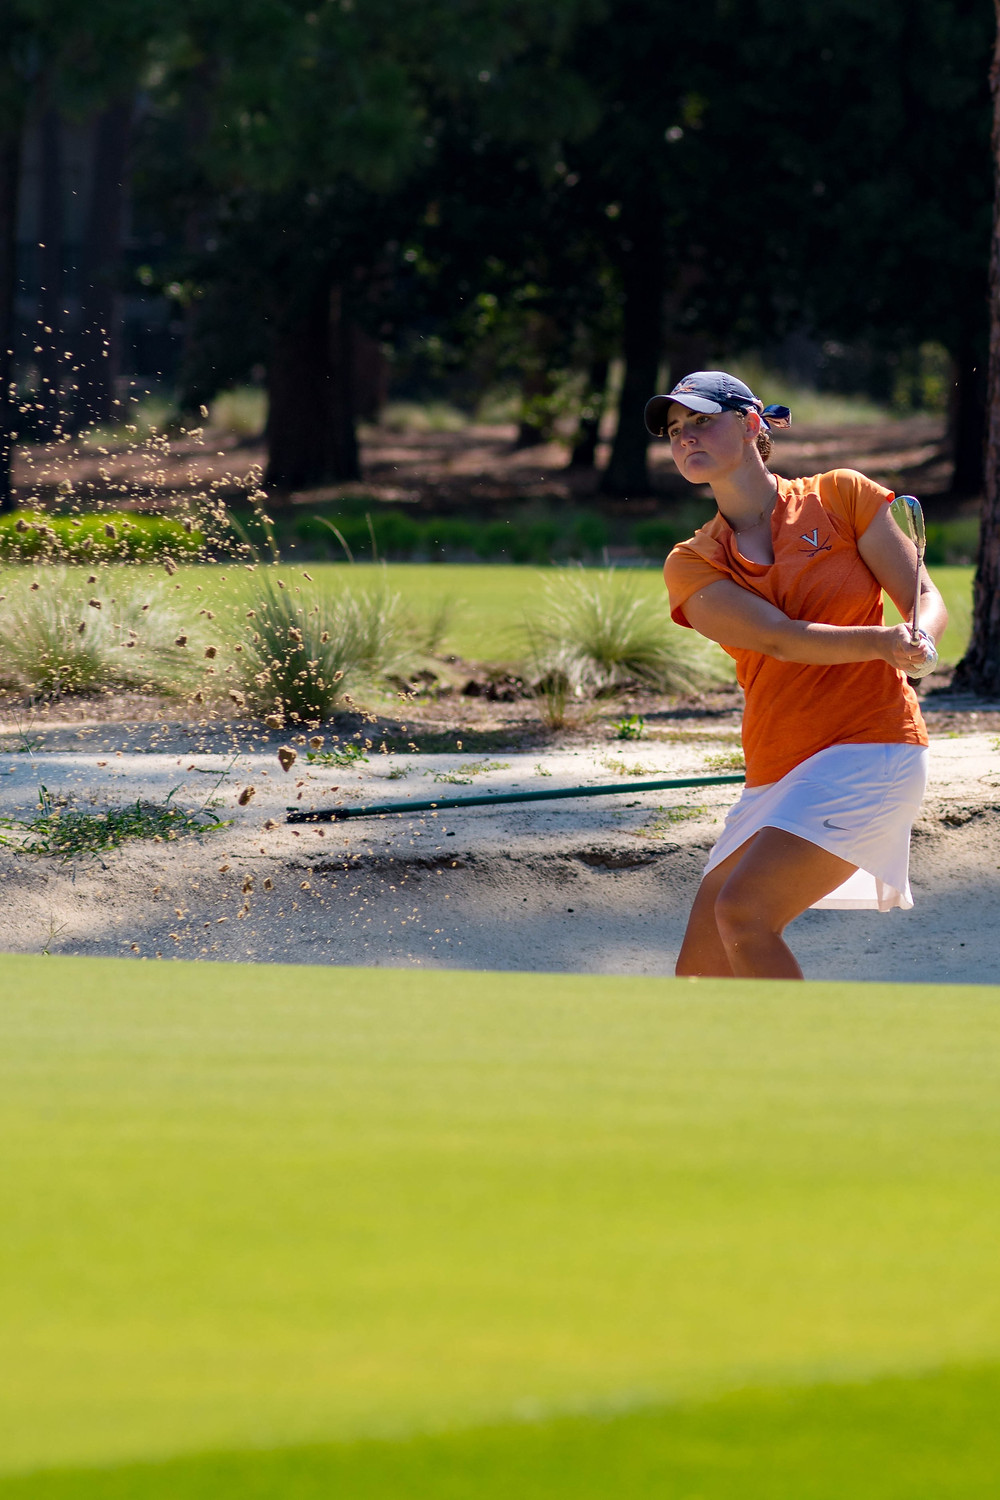 University of Virginia's Anna Redding coming out of the greenside bunker on 17th hole of Pinehurst No. 2 in 2017.